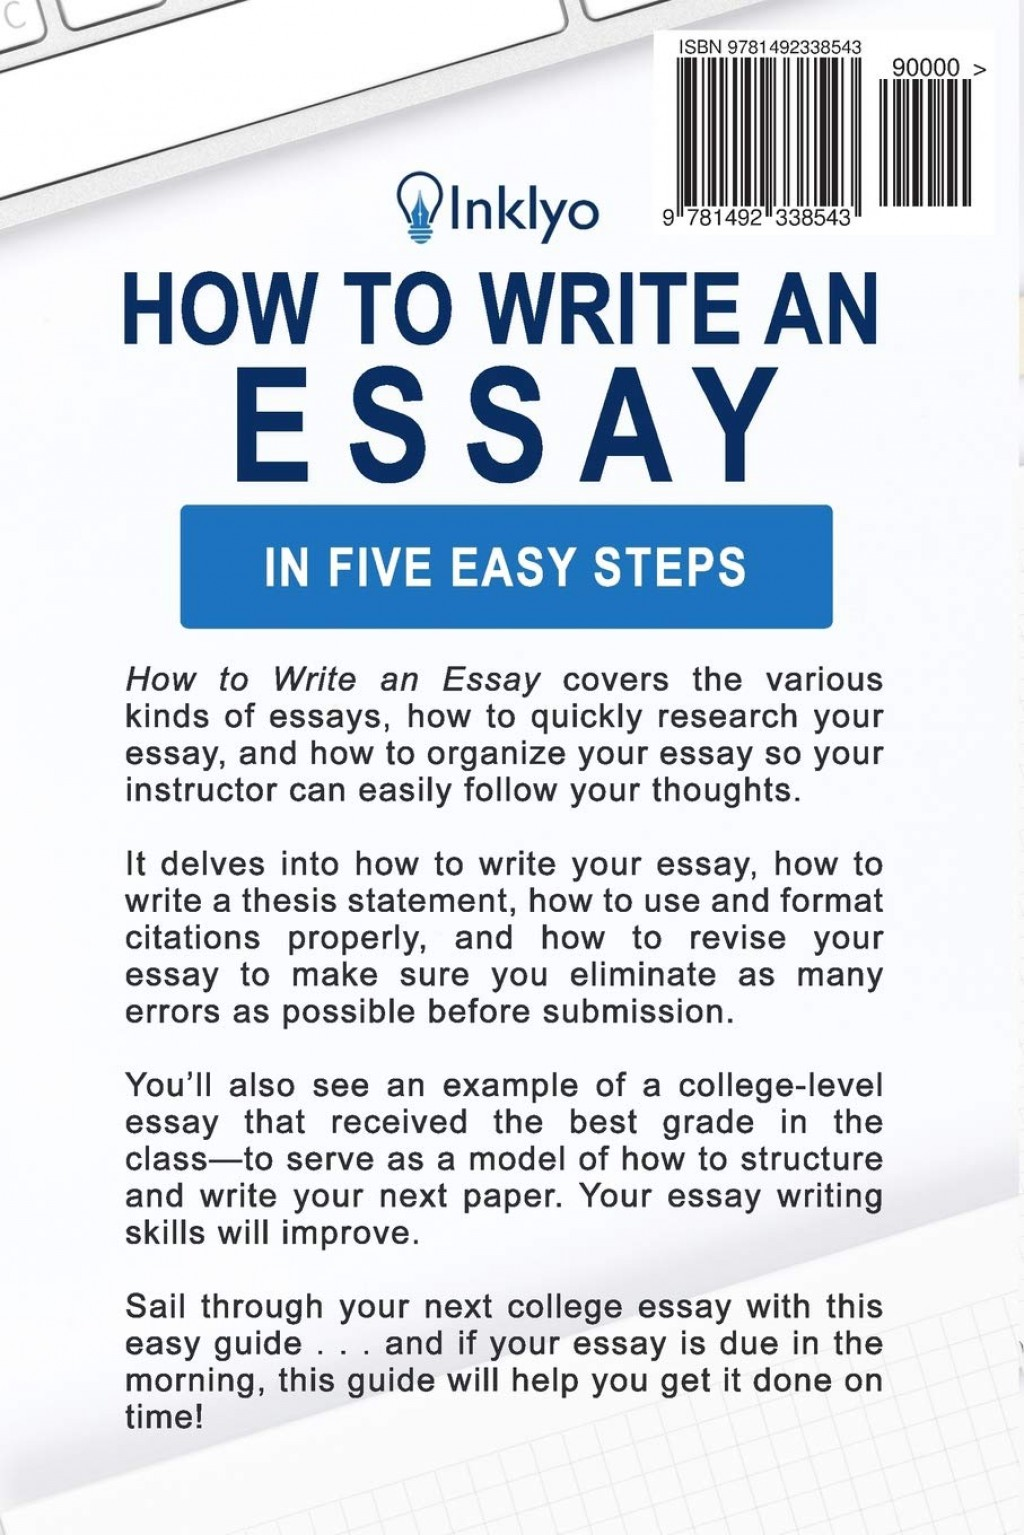 007 How To Make An Essay 71v7ckw5pll Unusual Outline Paper Introduction Title Page Large